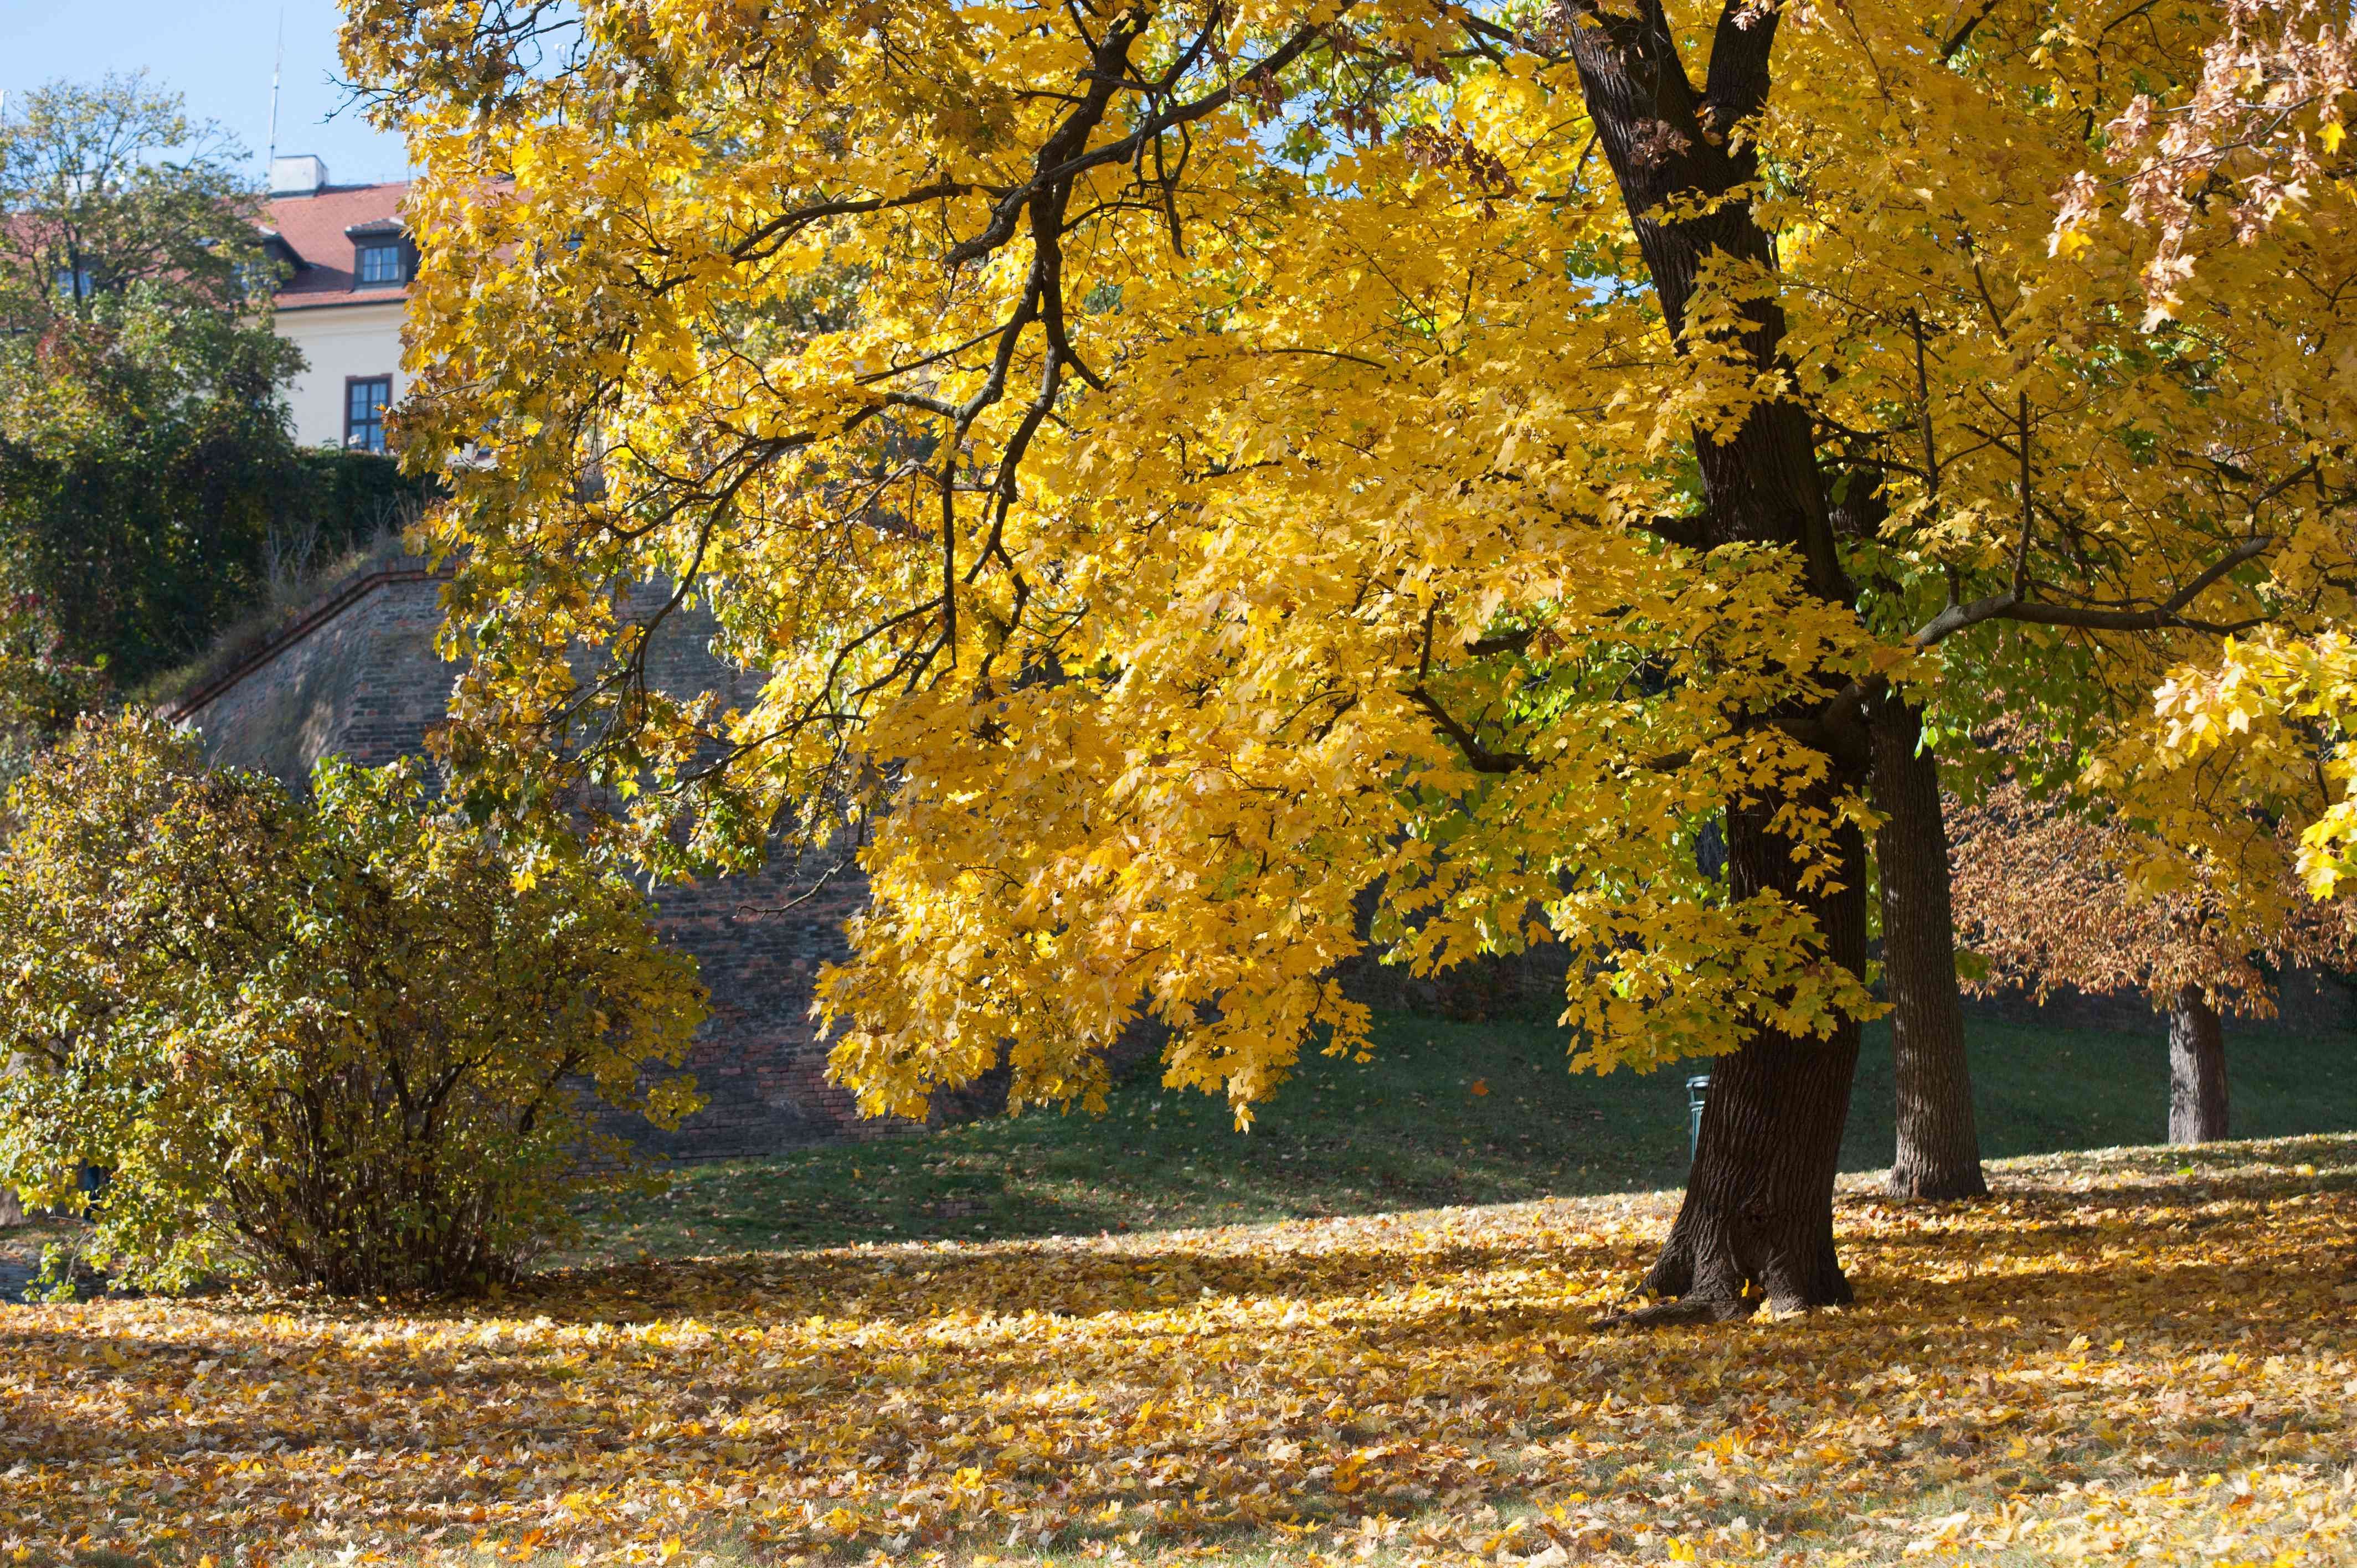 Norway maple tree with yellow leaves in middle of park with fallen leaves